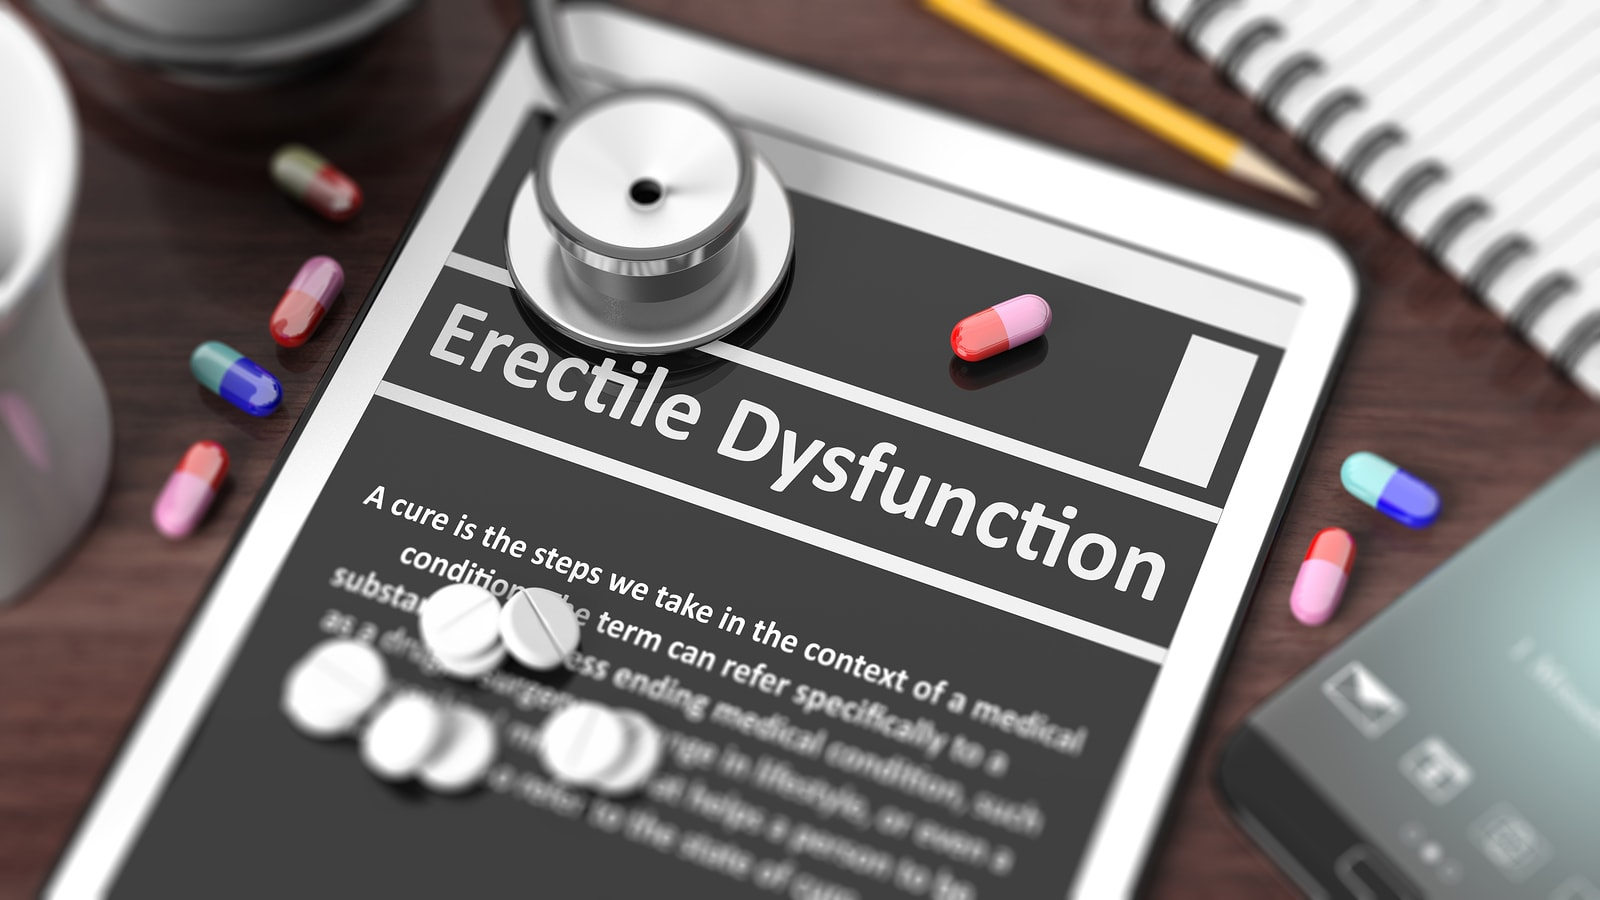 erectile-dysfunction-australian-experts